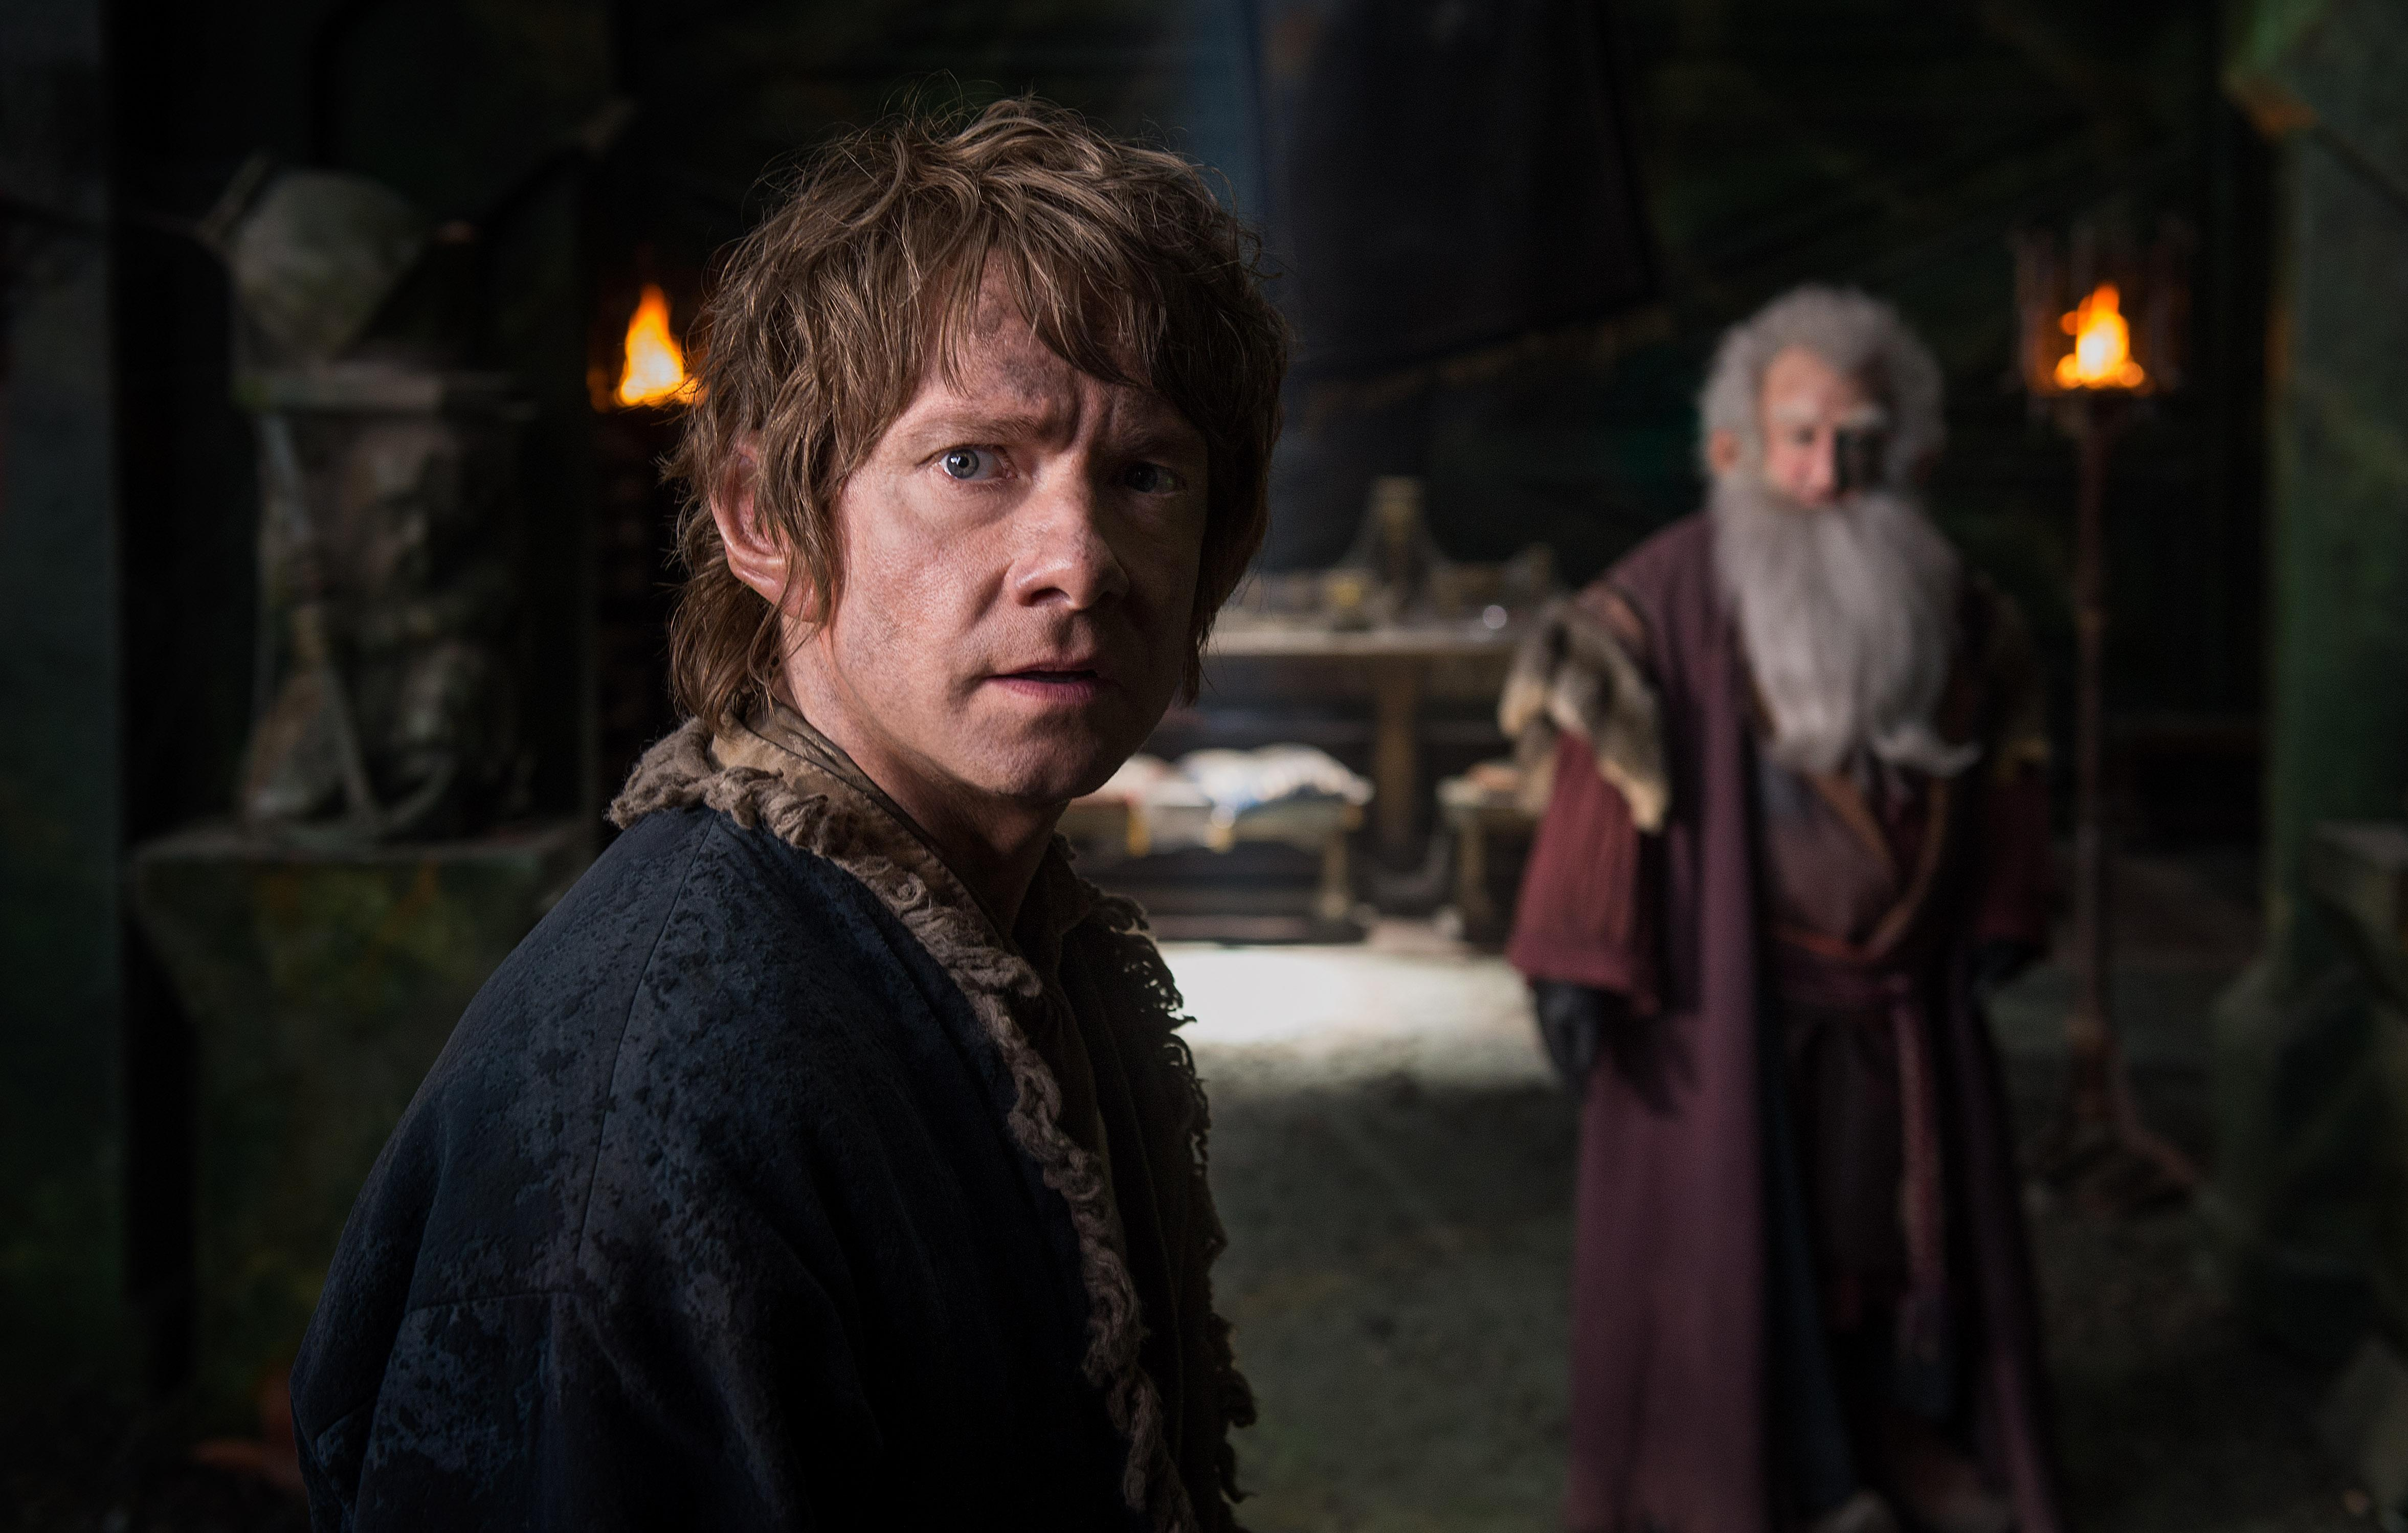 Review: 'The Hobbit' wraps with a Middle-earth melee